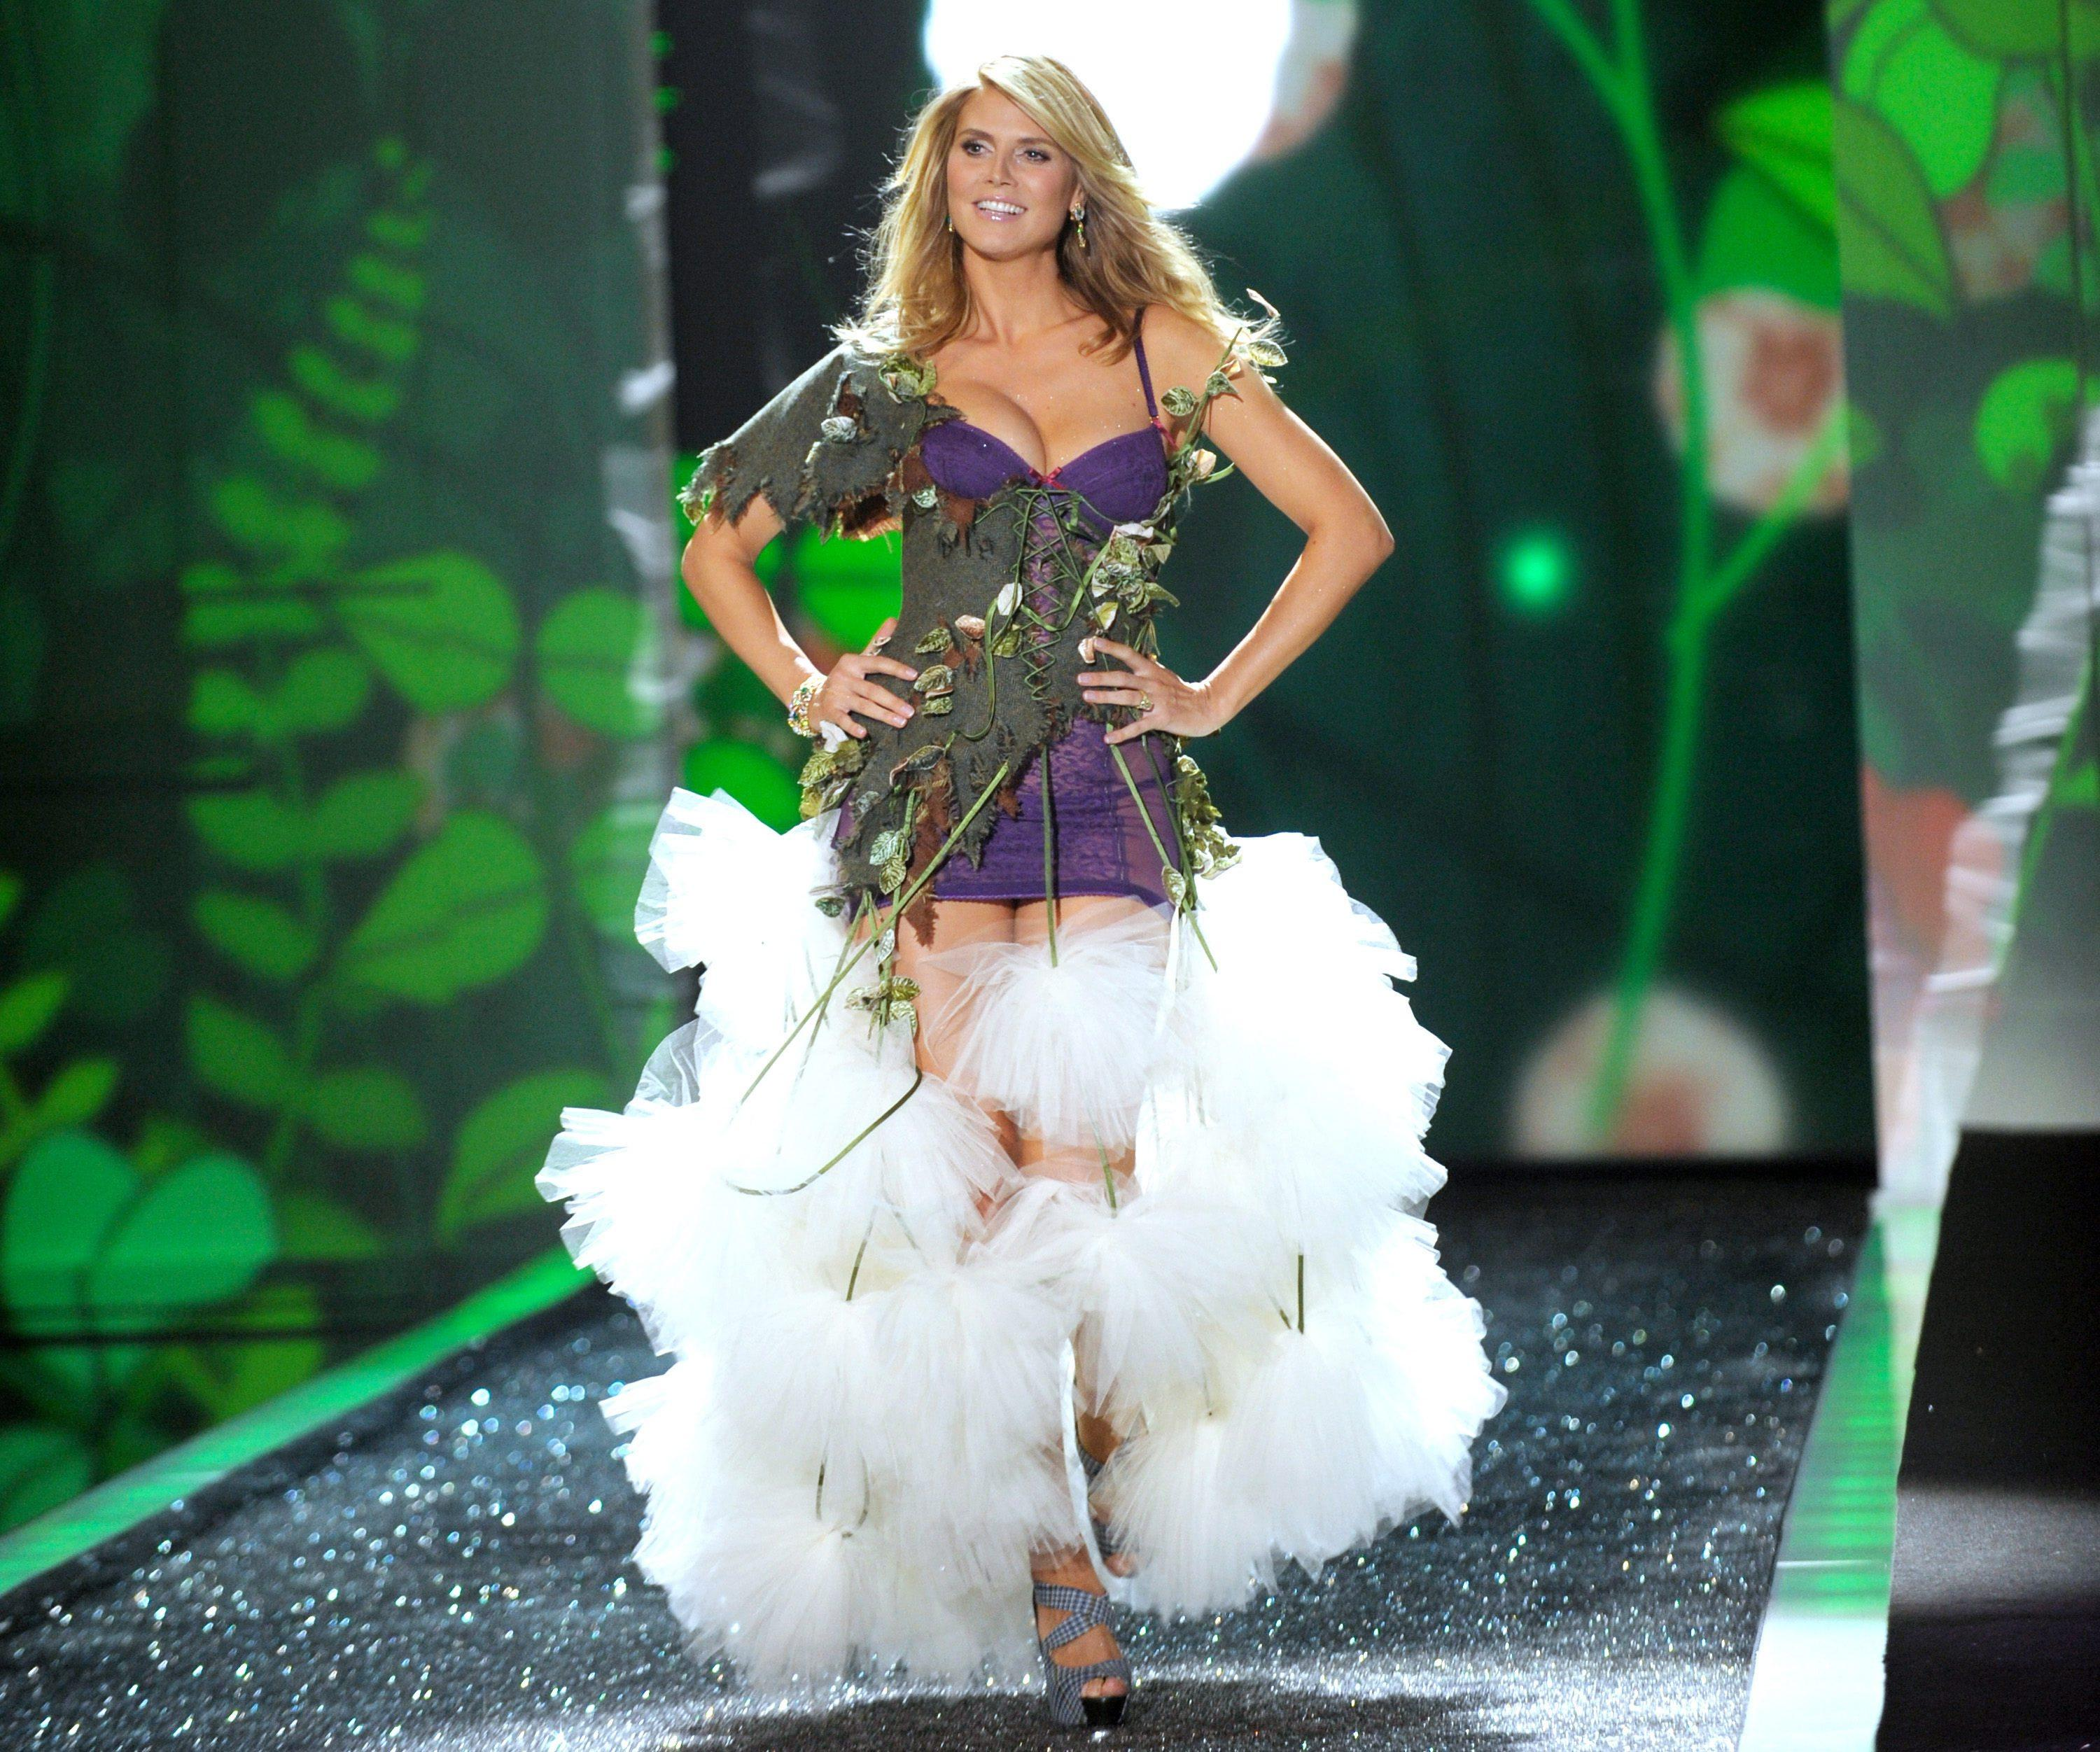 Victoria's Secret 2009 Fashion Show